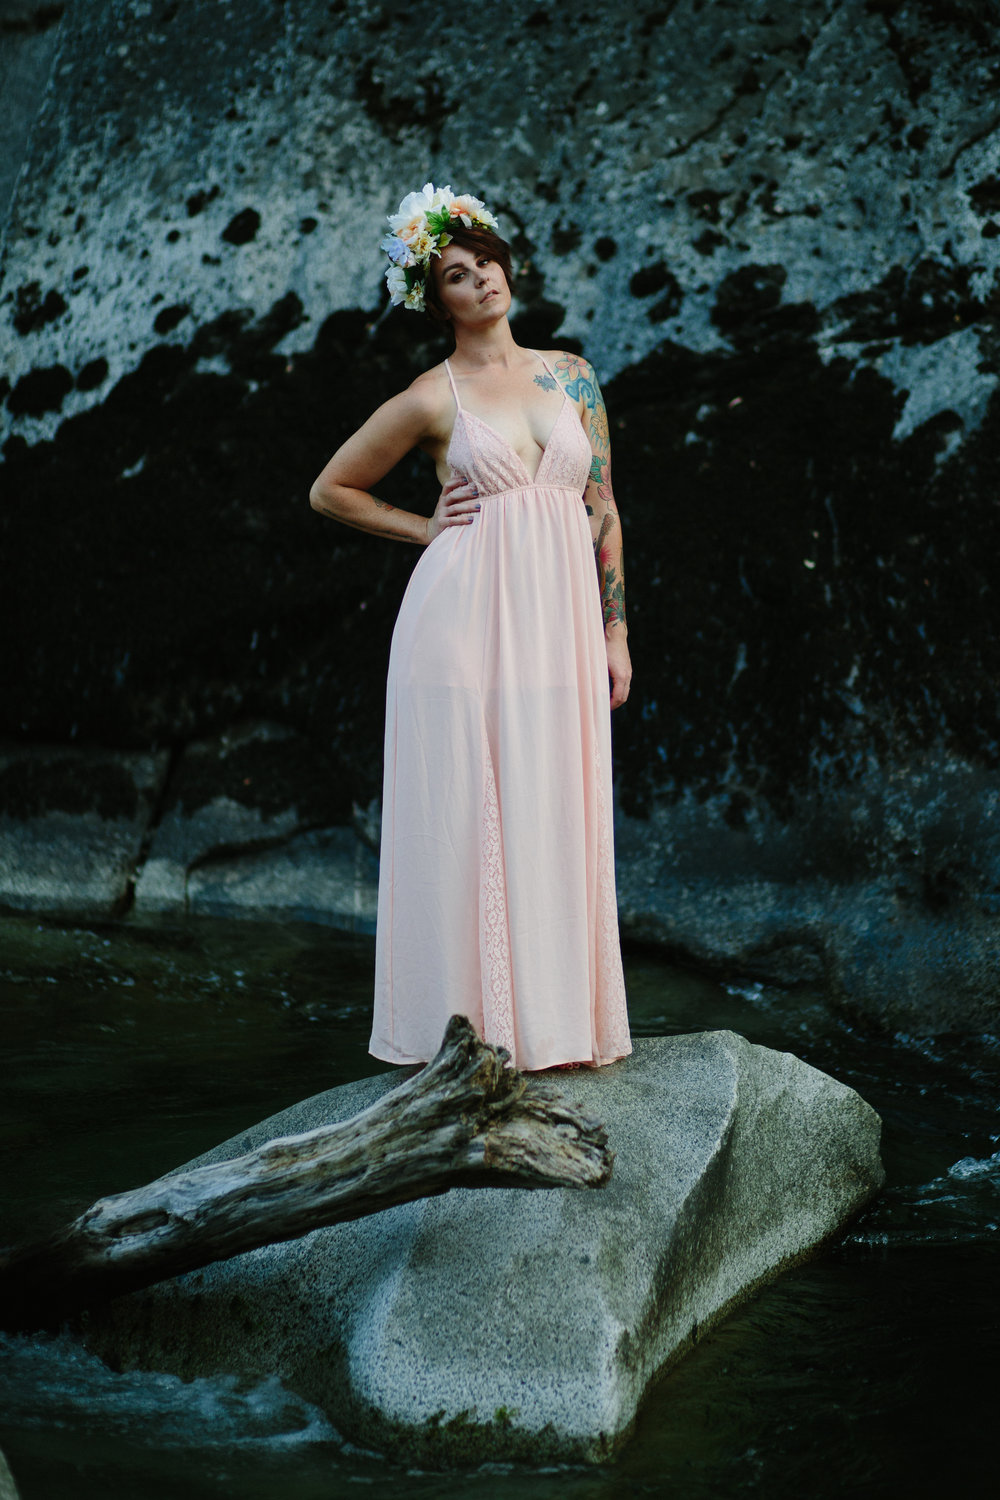 Yuba River Beauty Boudoir (58 of 80).jpg